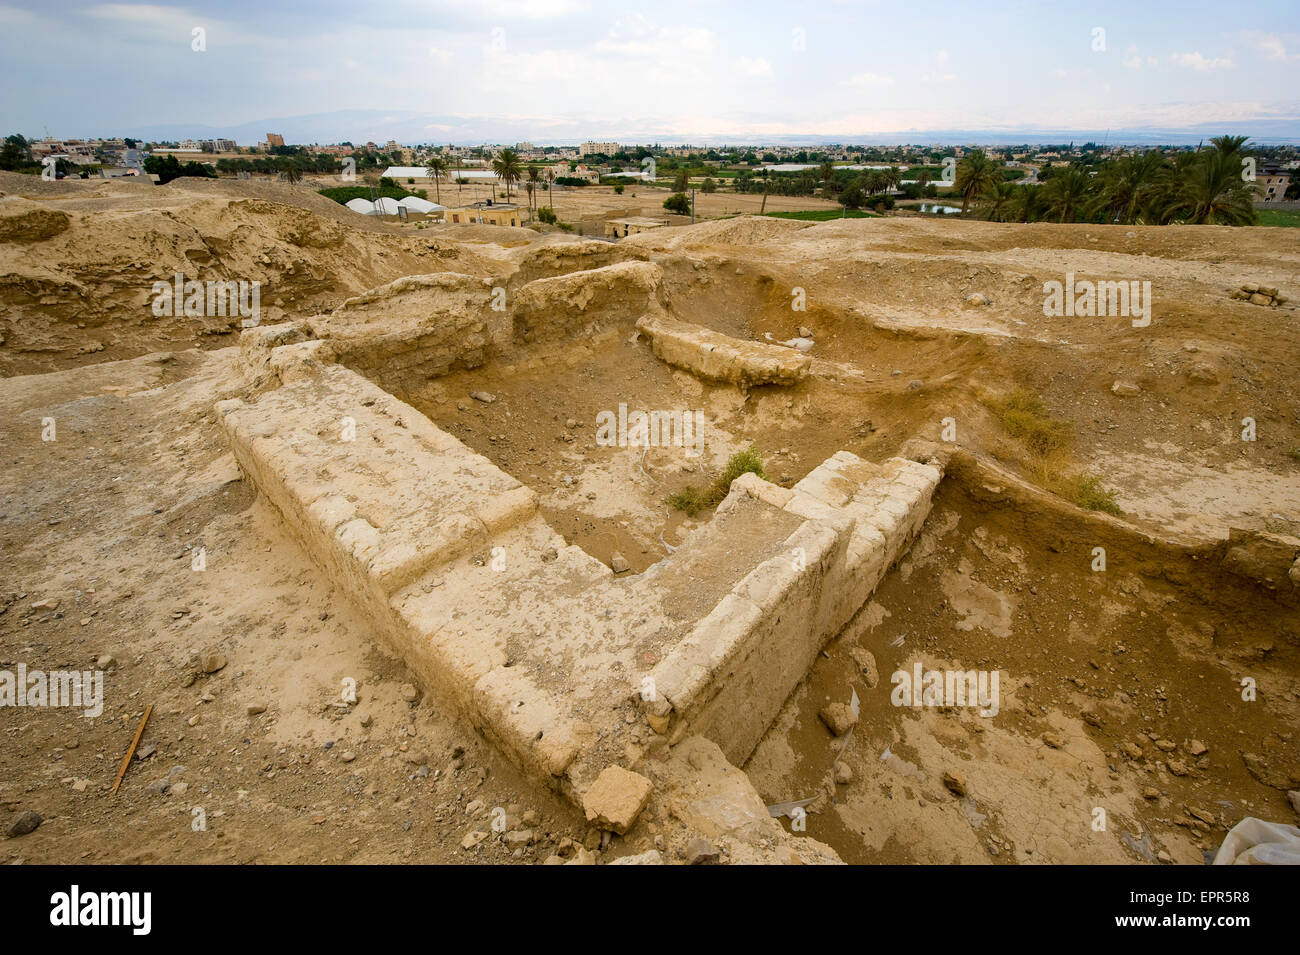 Old ruins and remains in Tell es-Sultan better known as Jericho the oldest city in the world - Stock Image